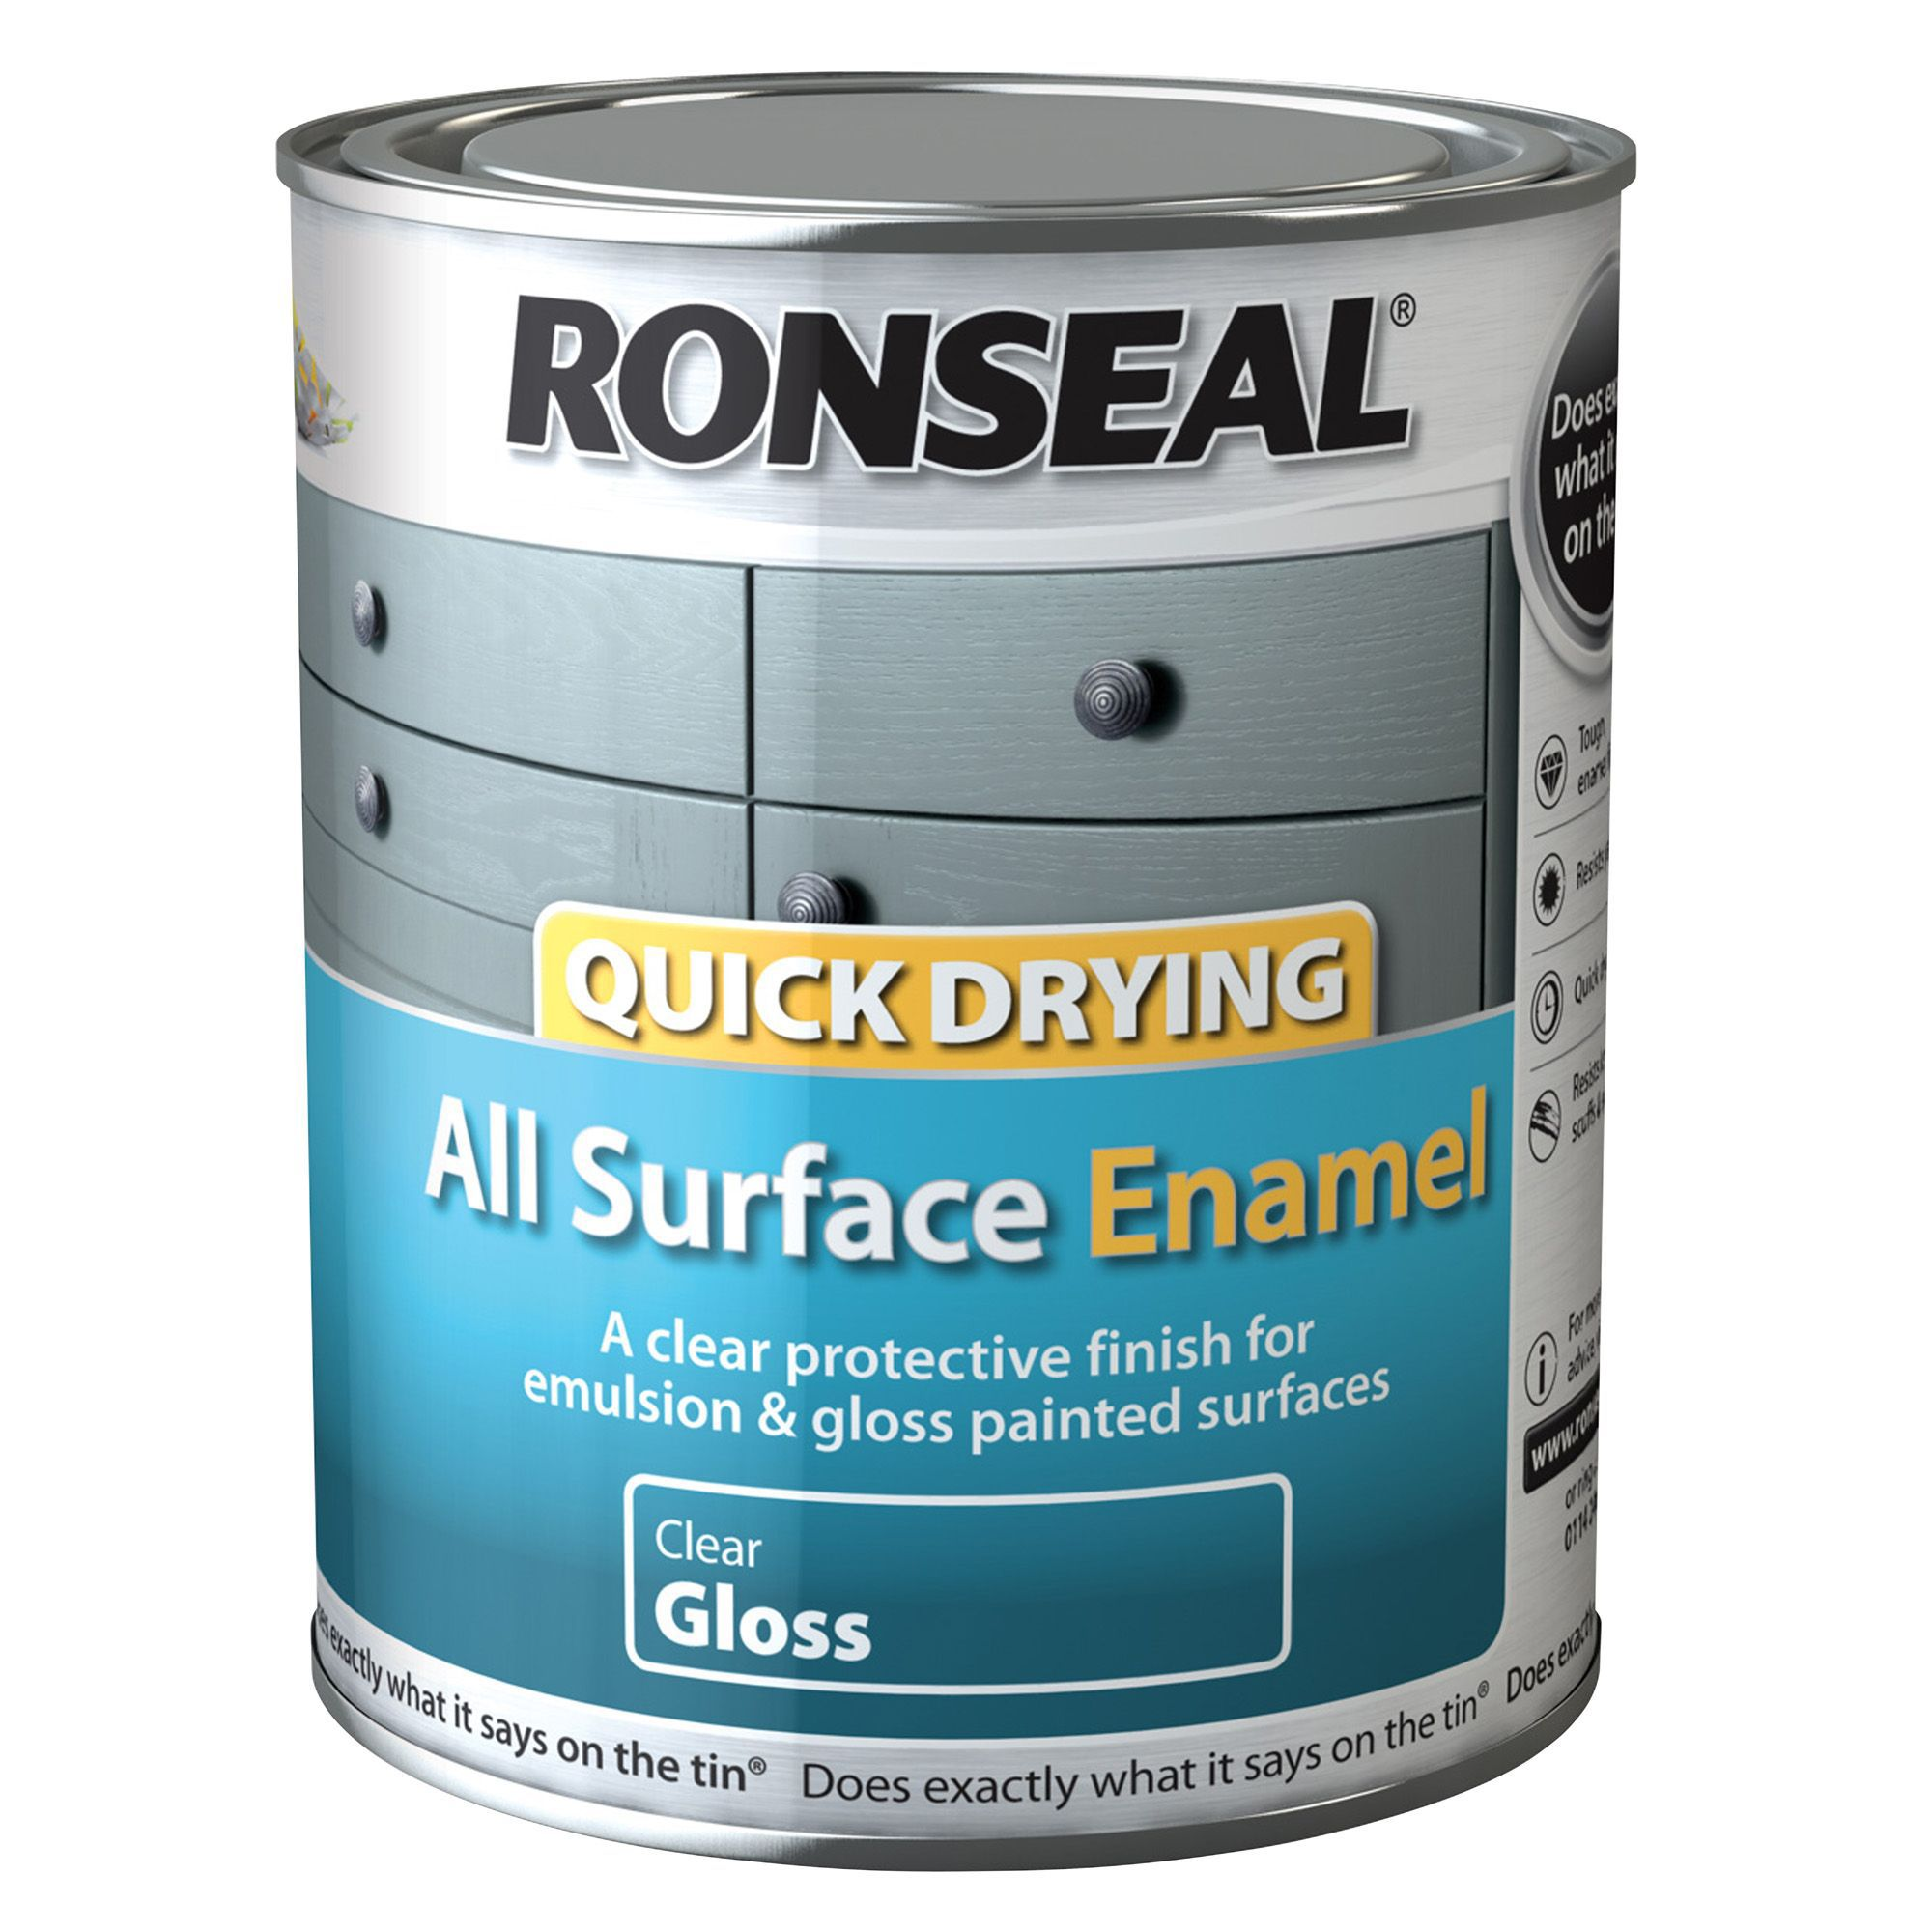 ronseal clear gloss enamel paint 750 ml departments. Black Bedroom Furniture Sets. Home Design Ideas